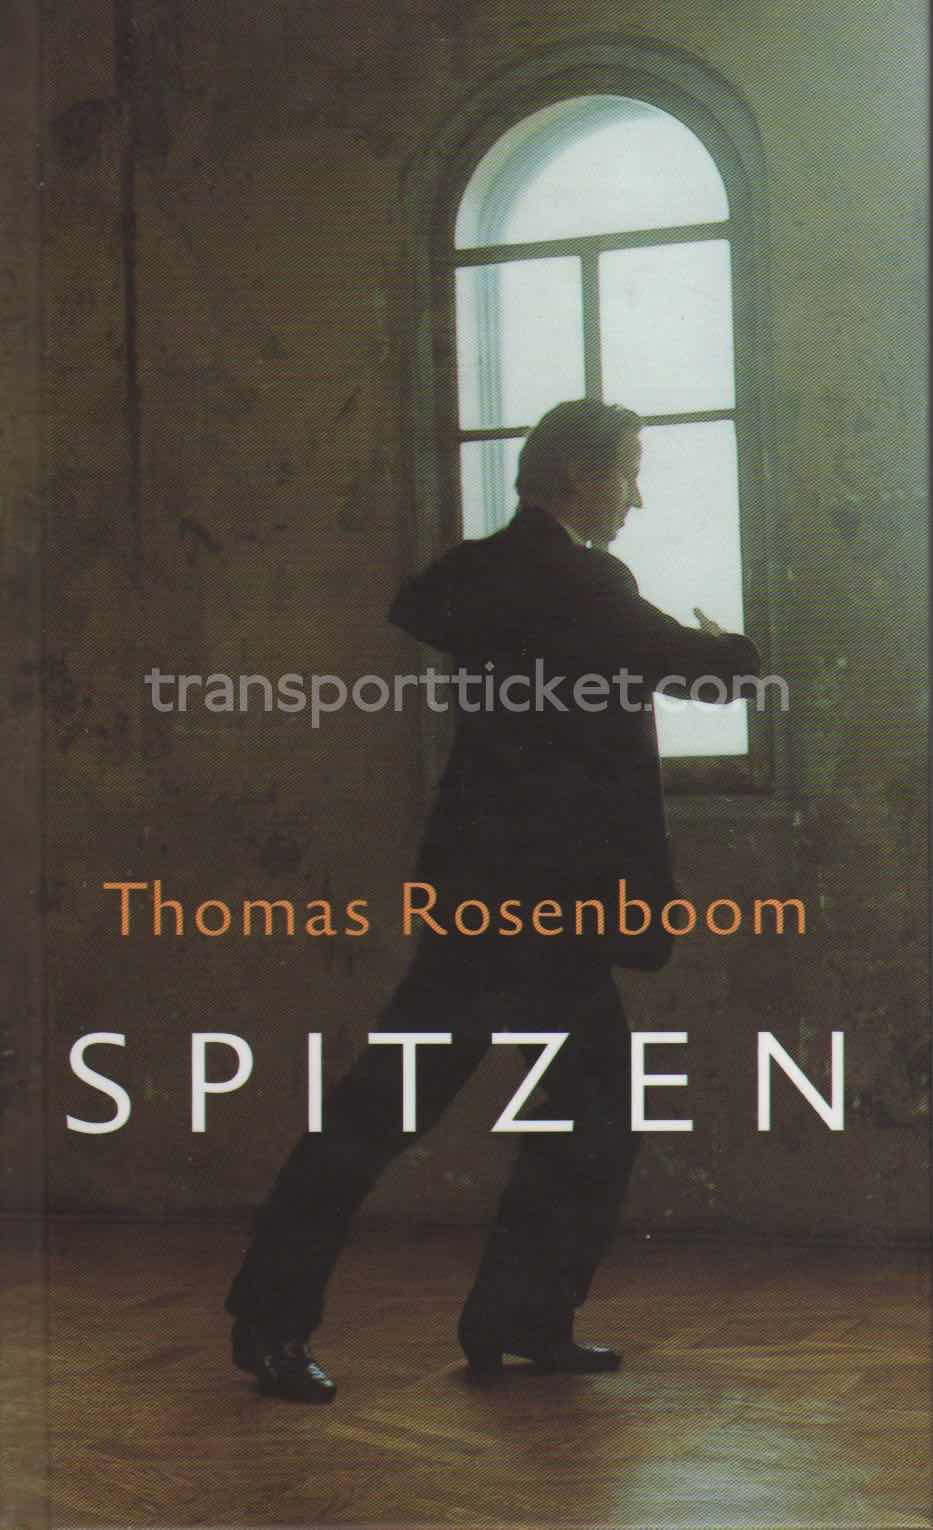 Thomas Rosenboom - Spitzen (2004)